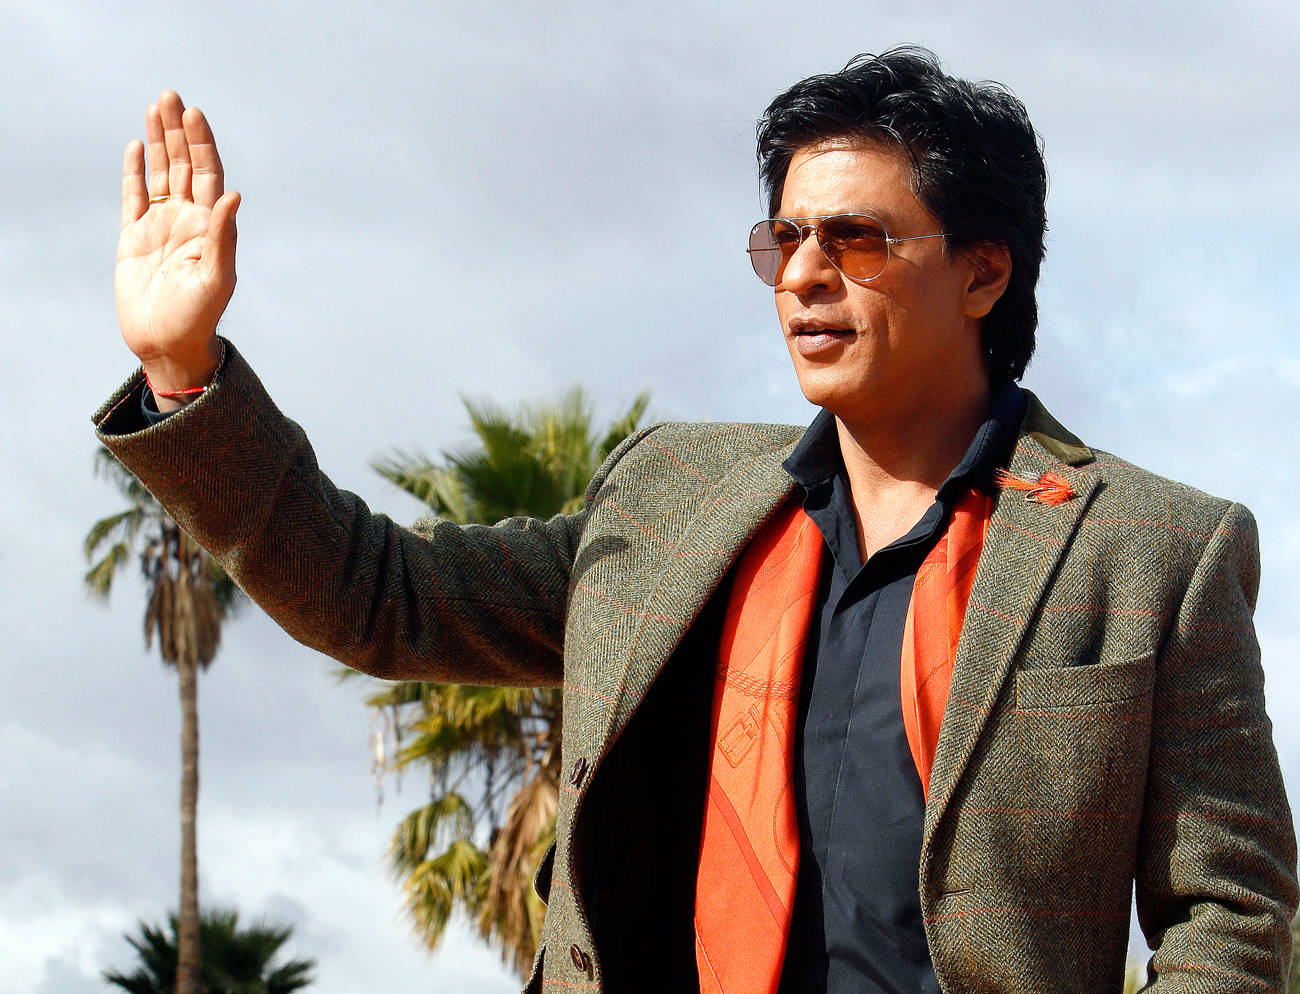 Indian actor Shahrukh Khan poses for photographers at the Marrakech International Film Festival in Marrakech.